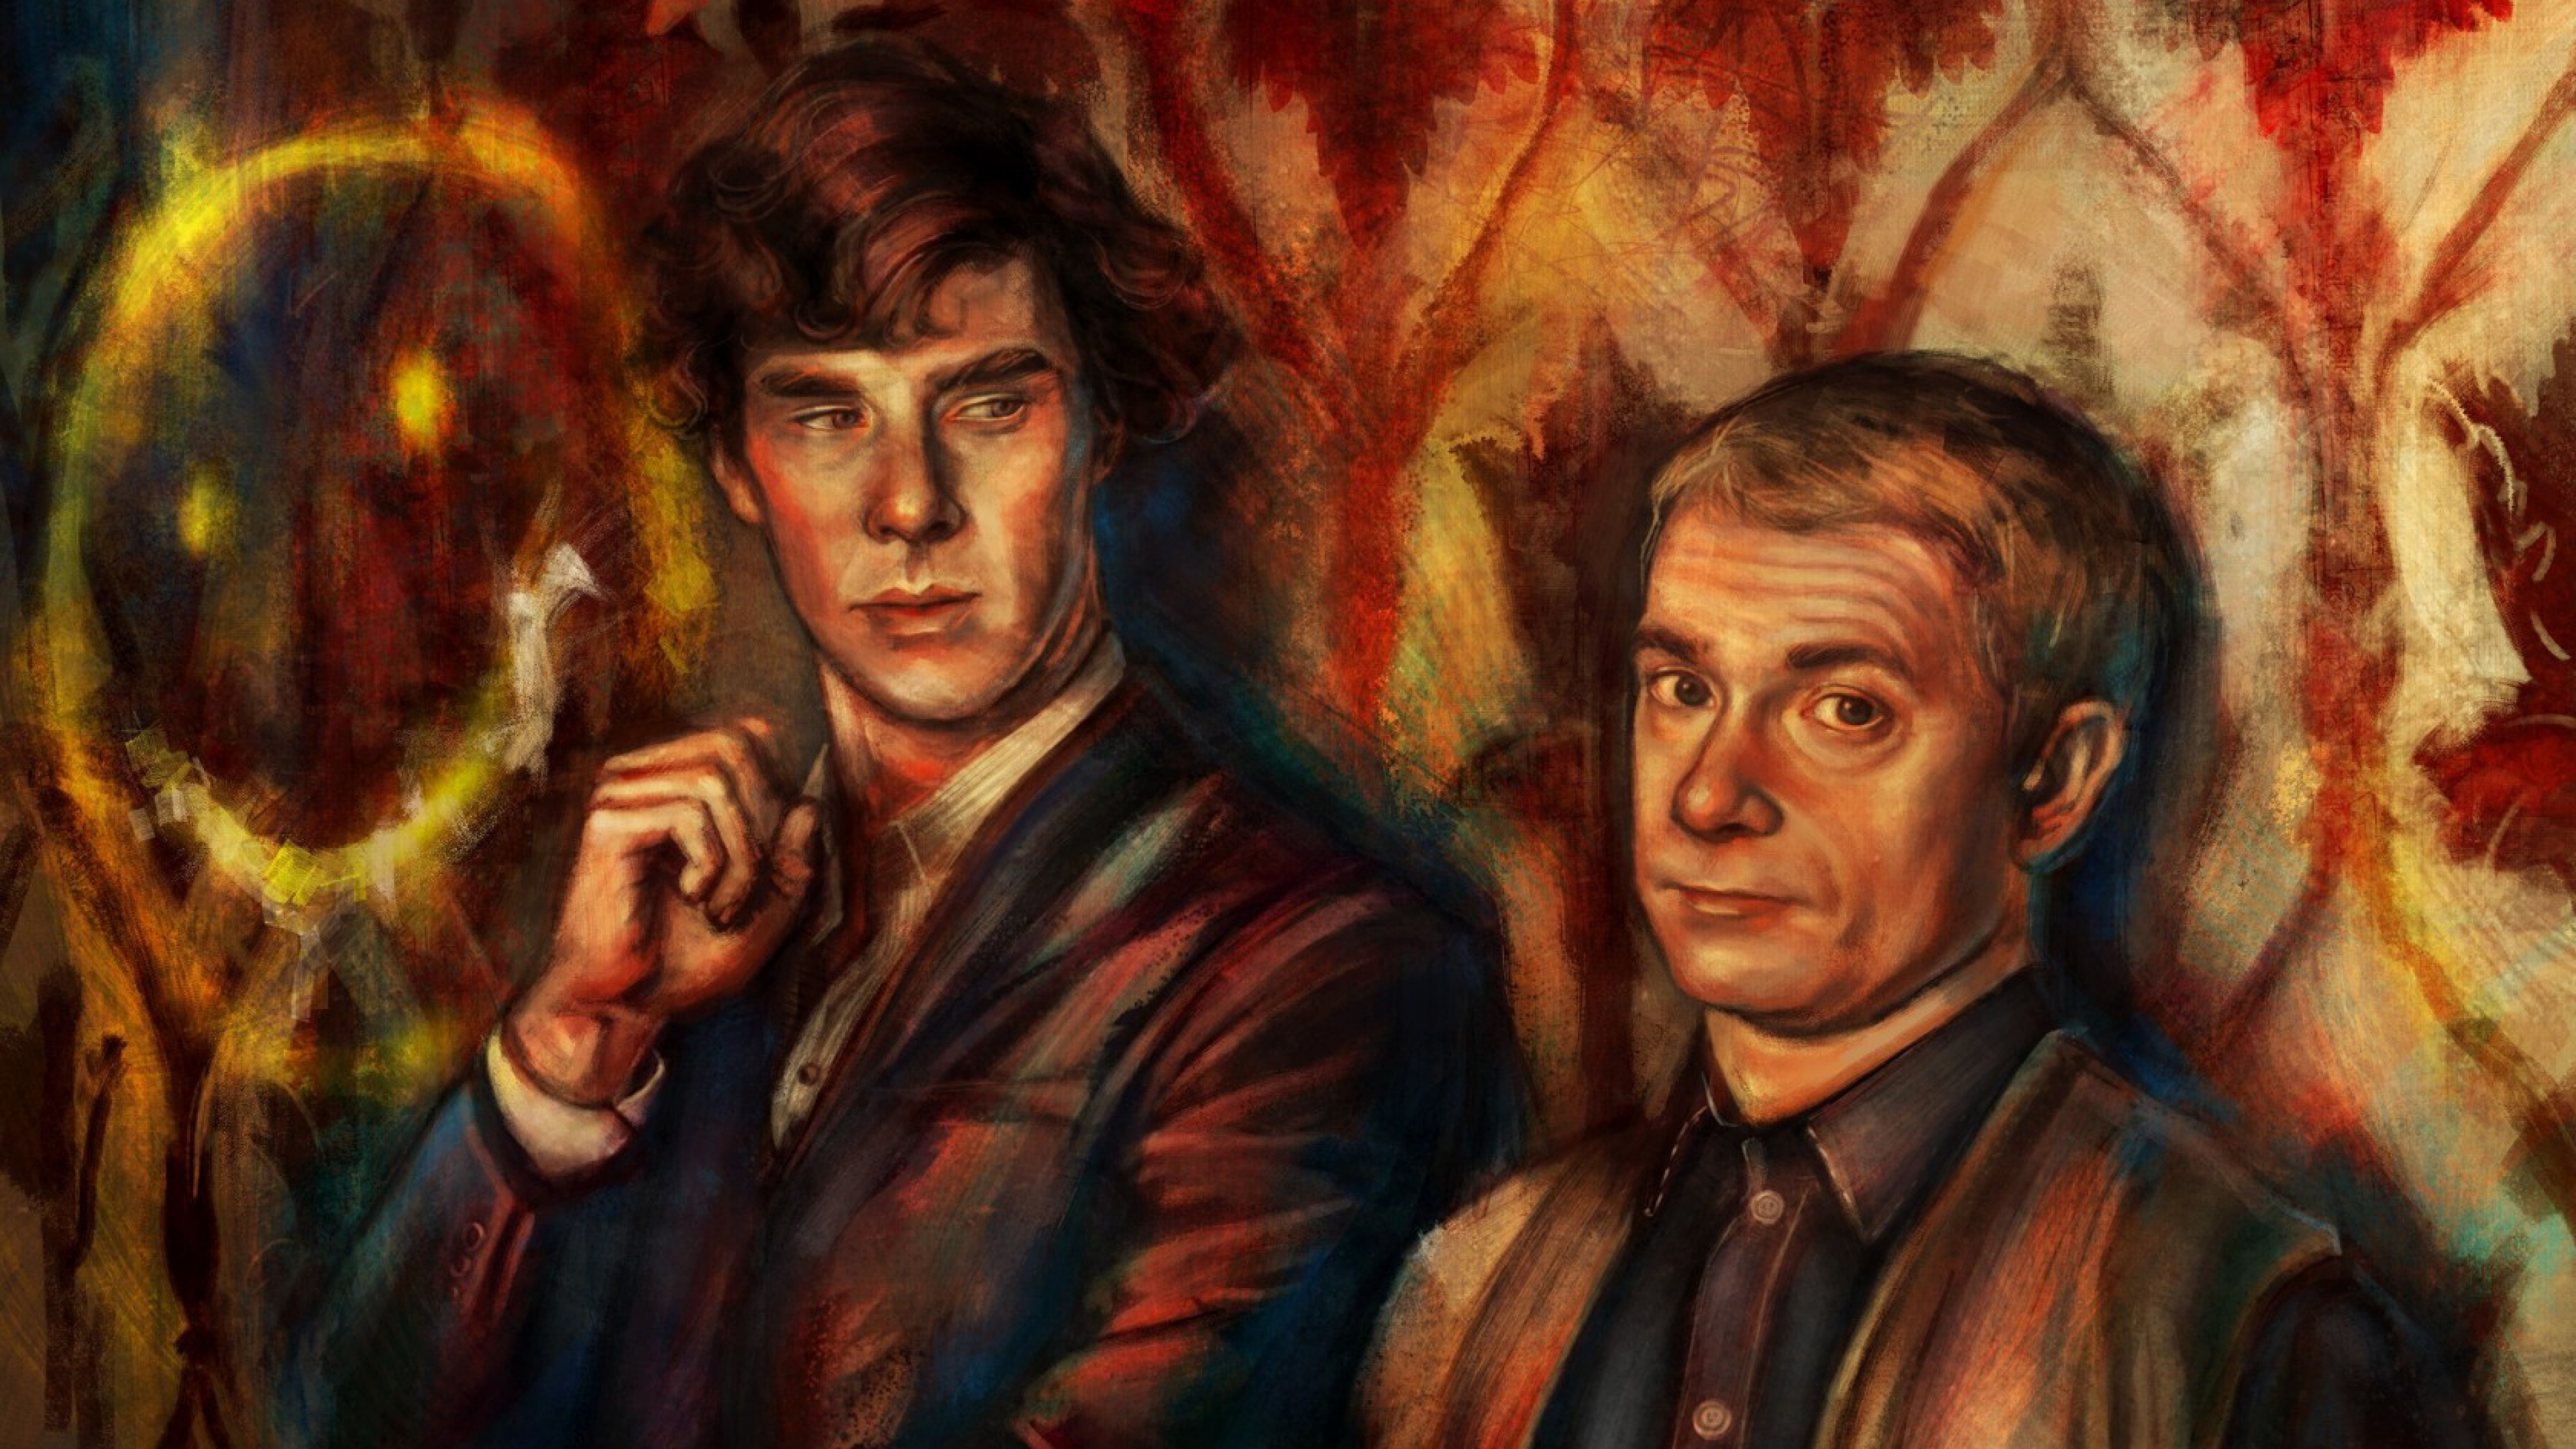 Wallpapers sherlock doctor john watson benedict cumberbatch martin Sherlock Wallpapers HD